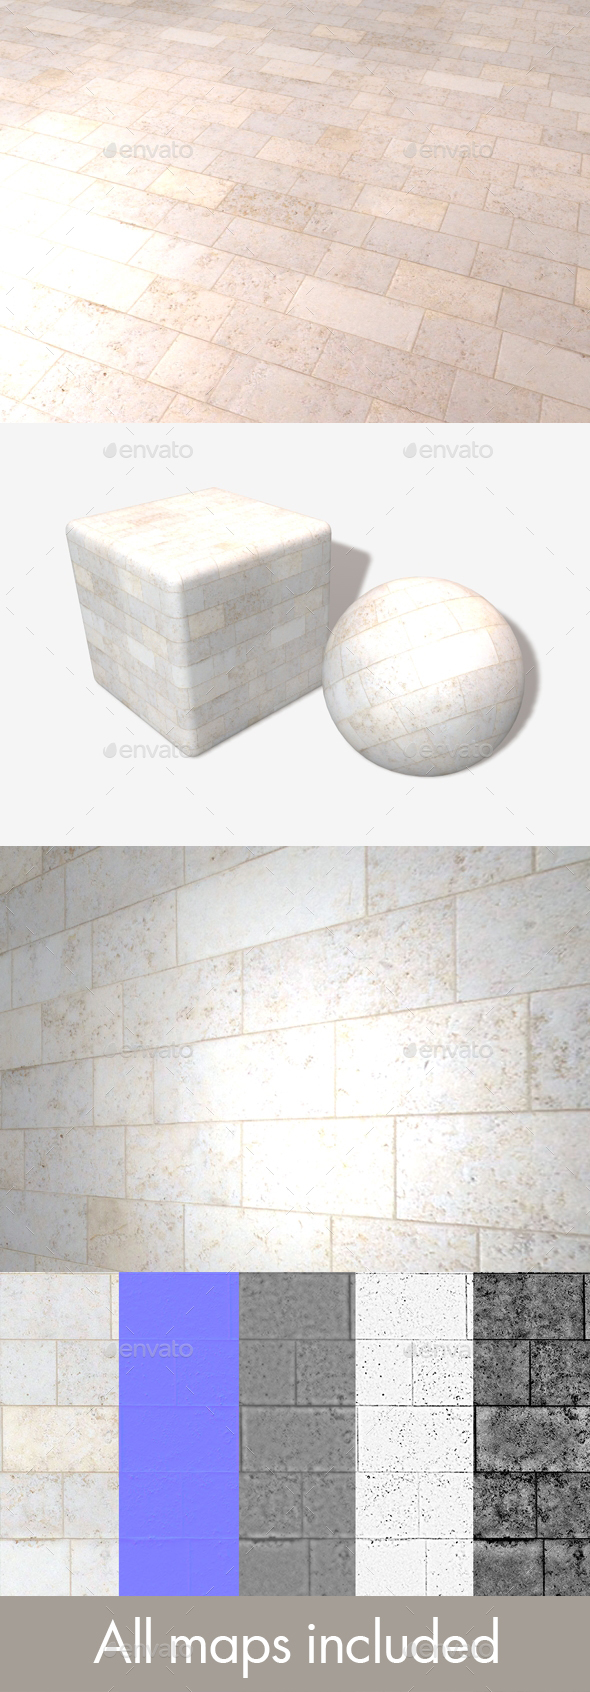 Marble Bricks Seamless Texture - 3DOcean Item for Sale